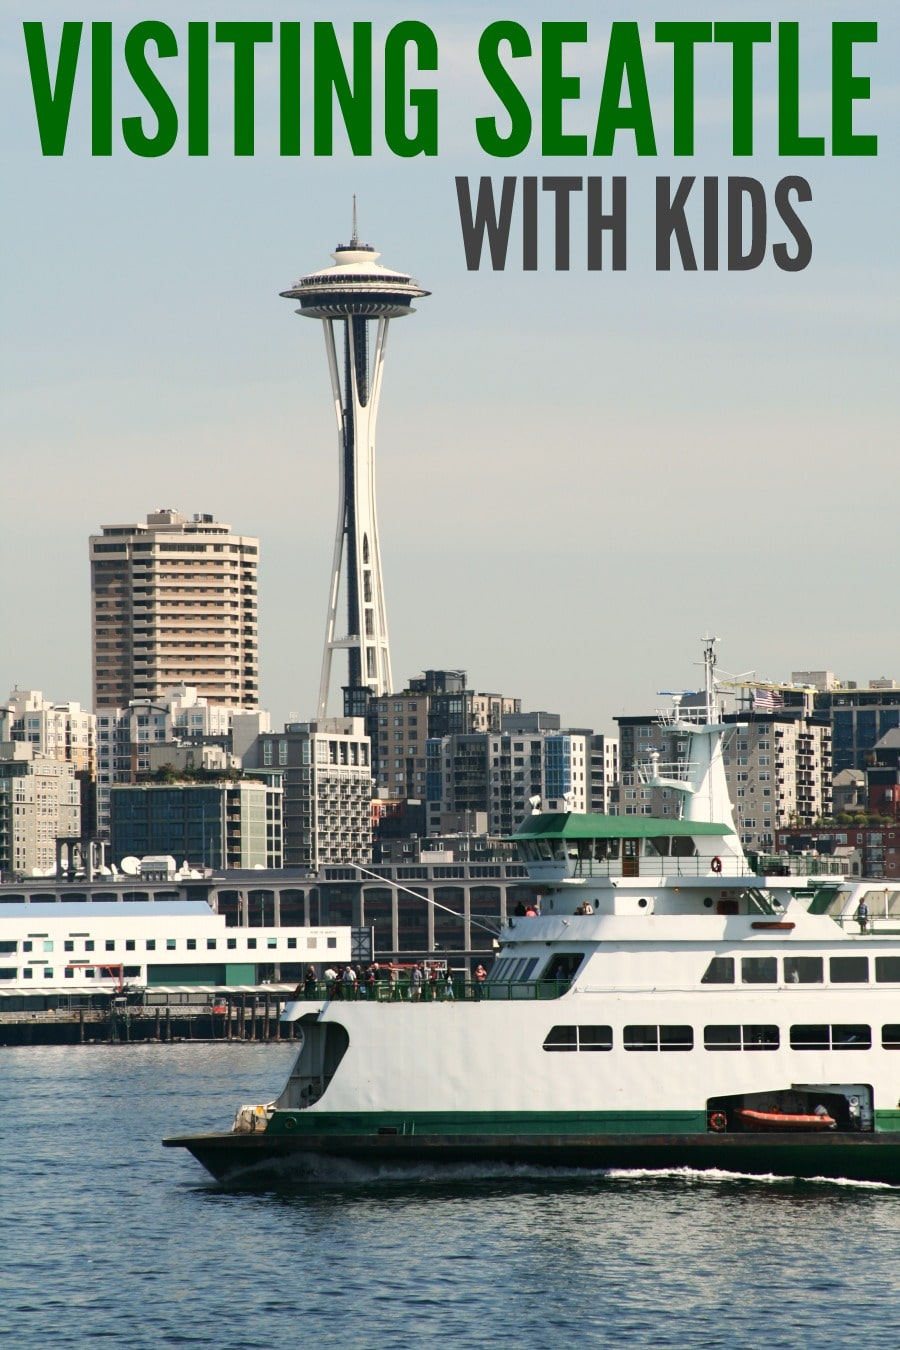 Tips for Visiting Seattle with Kids